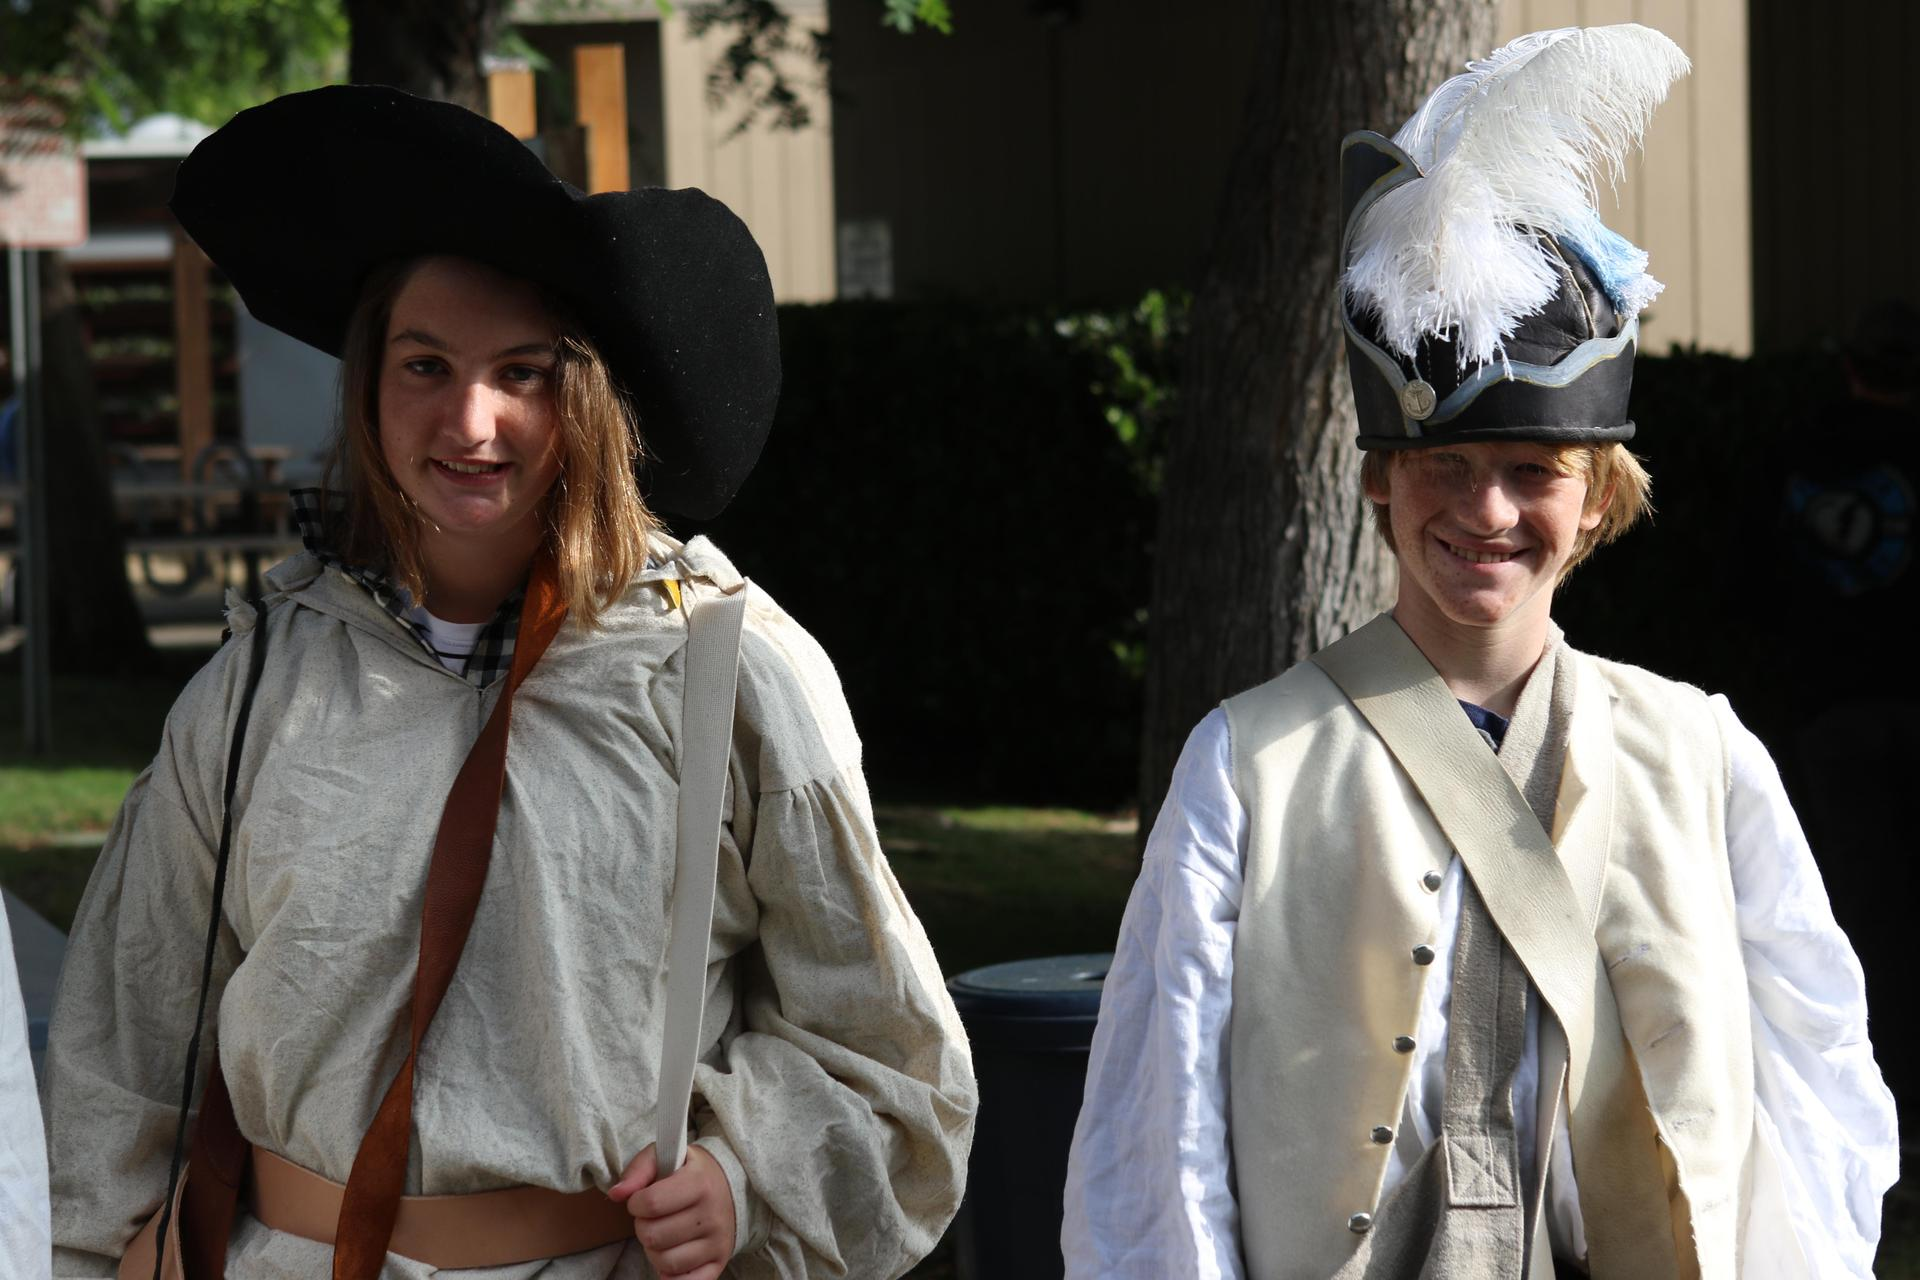 Students wearing historical costumes